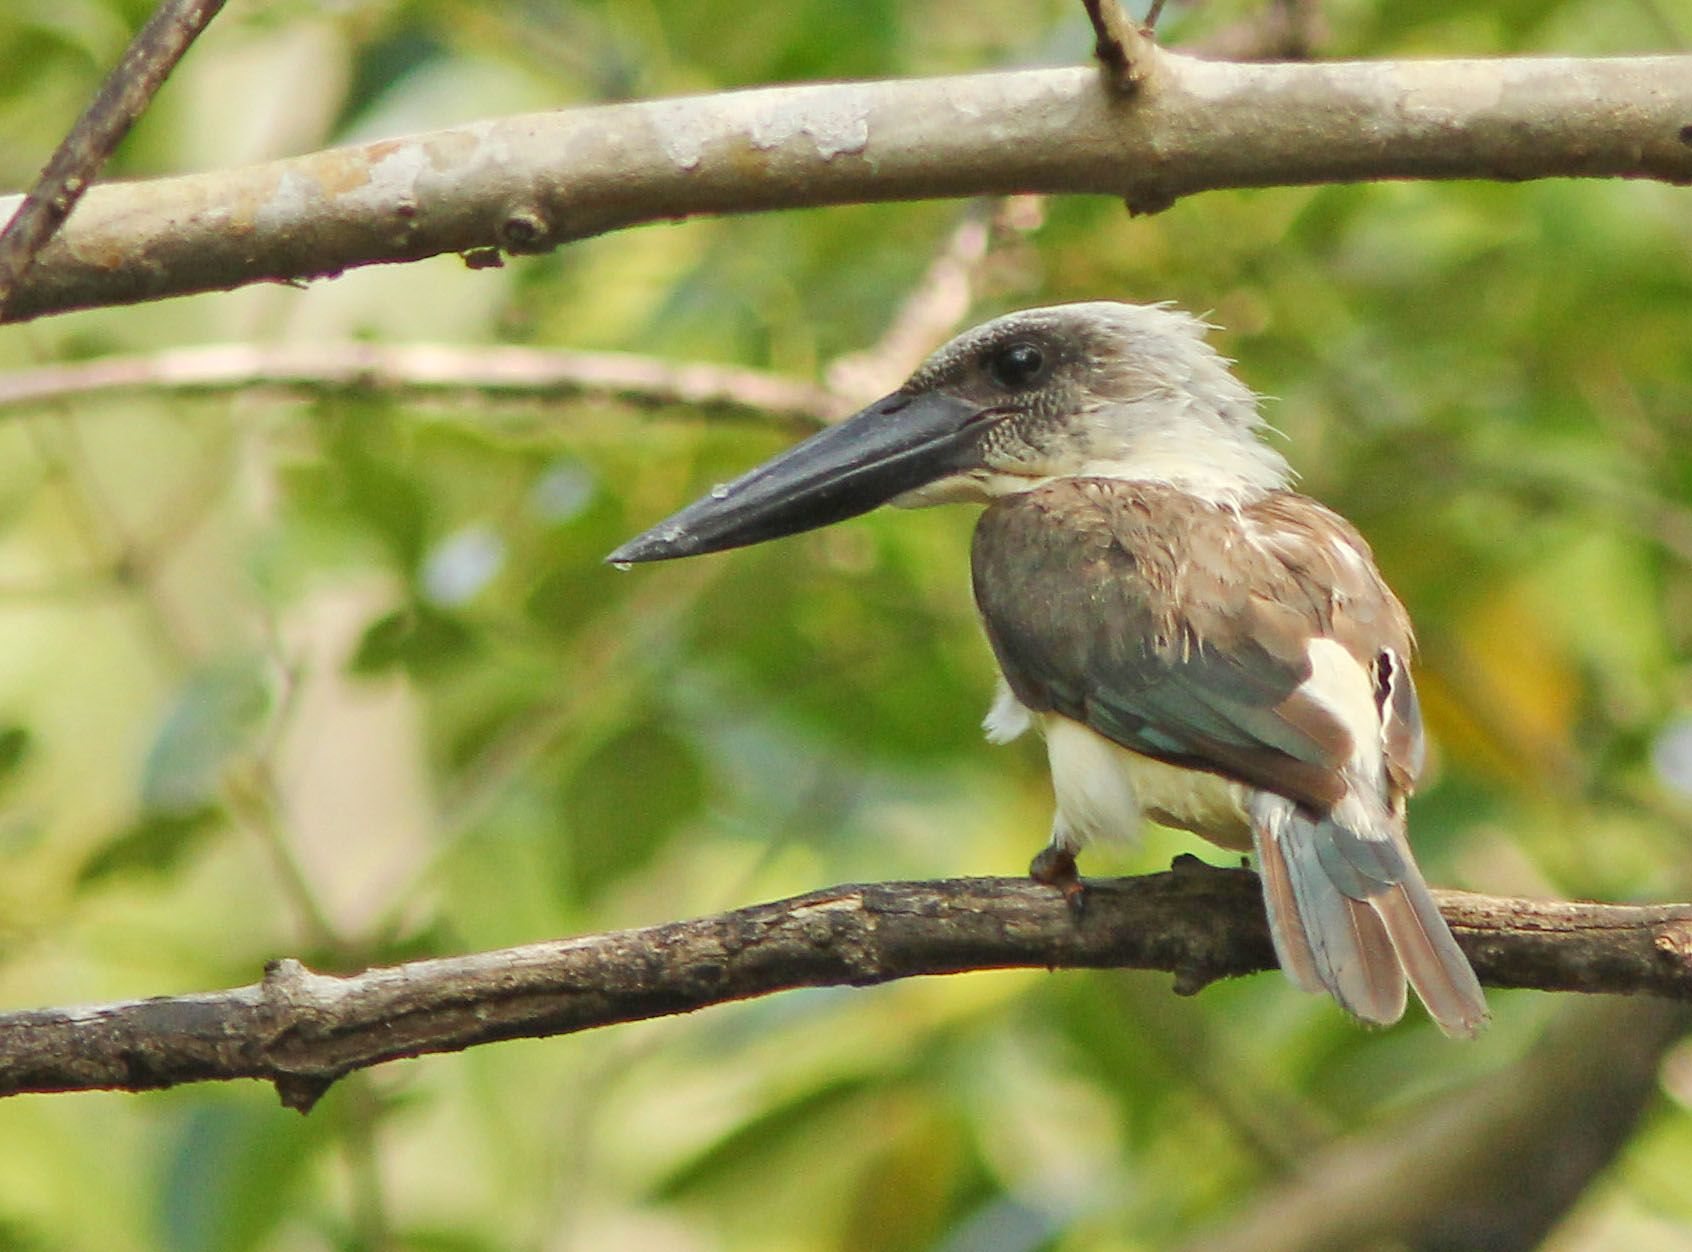 Great billed kingfisher or Black-billed Kingfisher (Pelargopsis melanorhyncha) is endemic to INDONESIA.